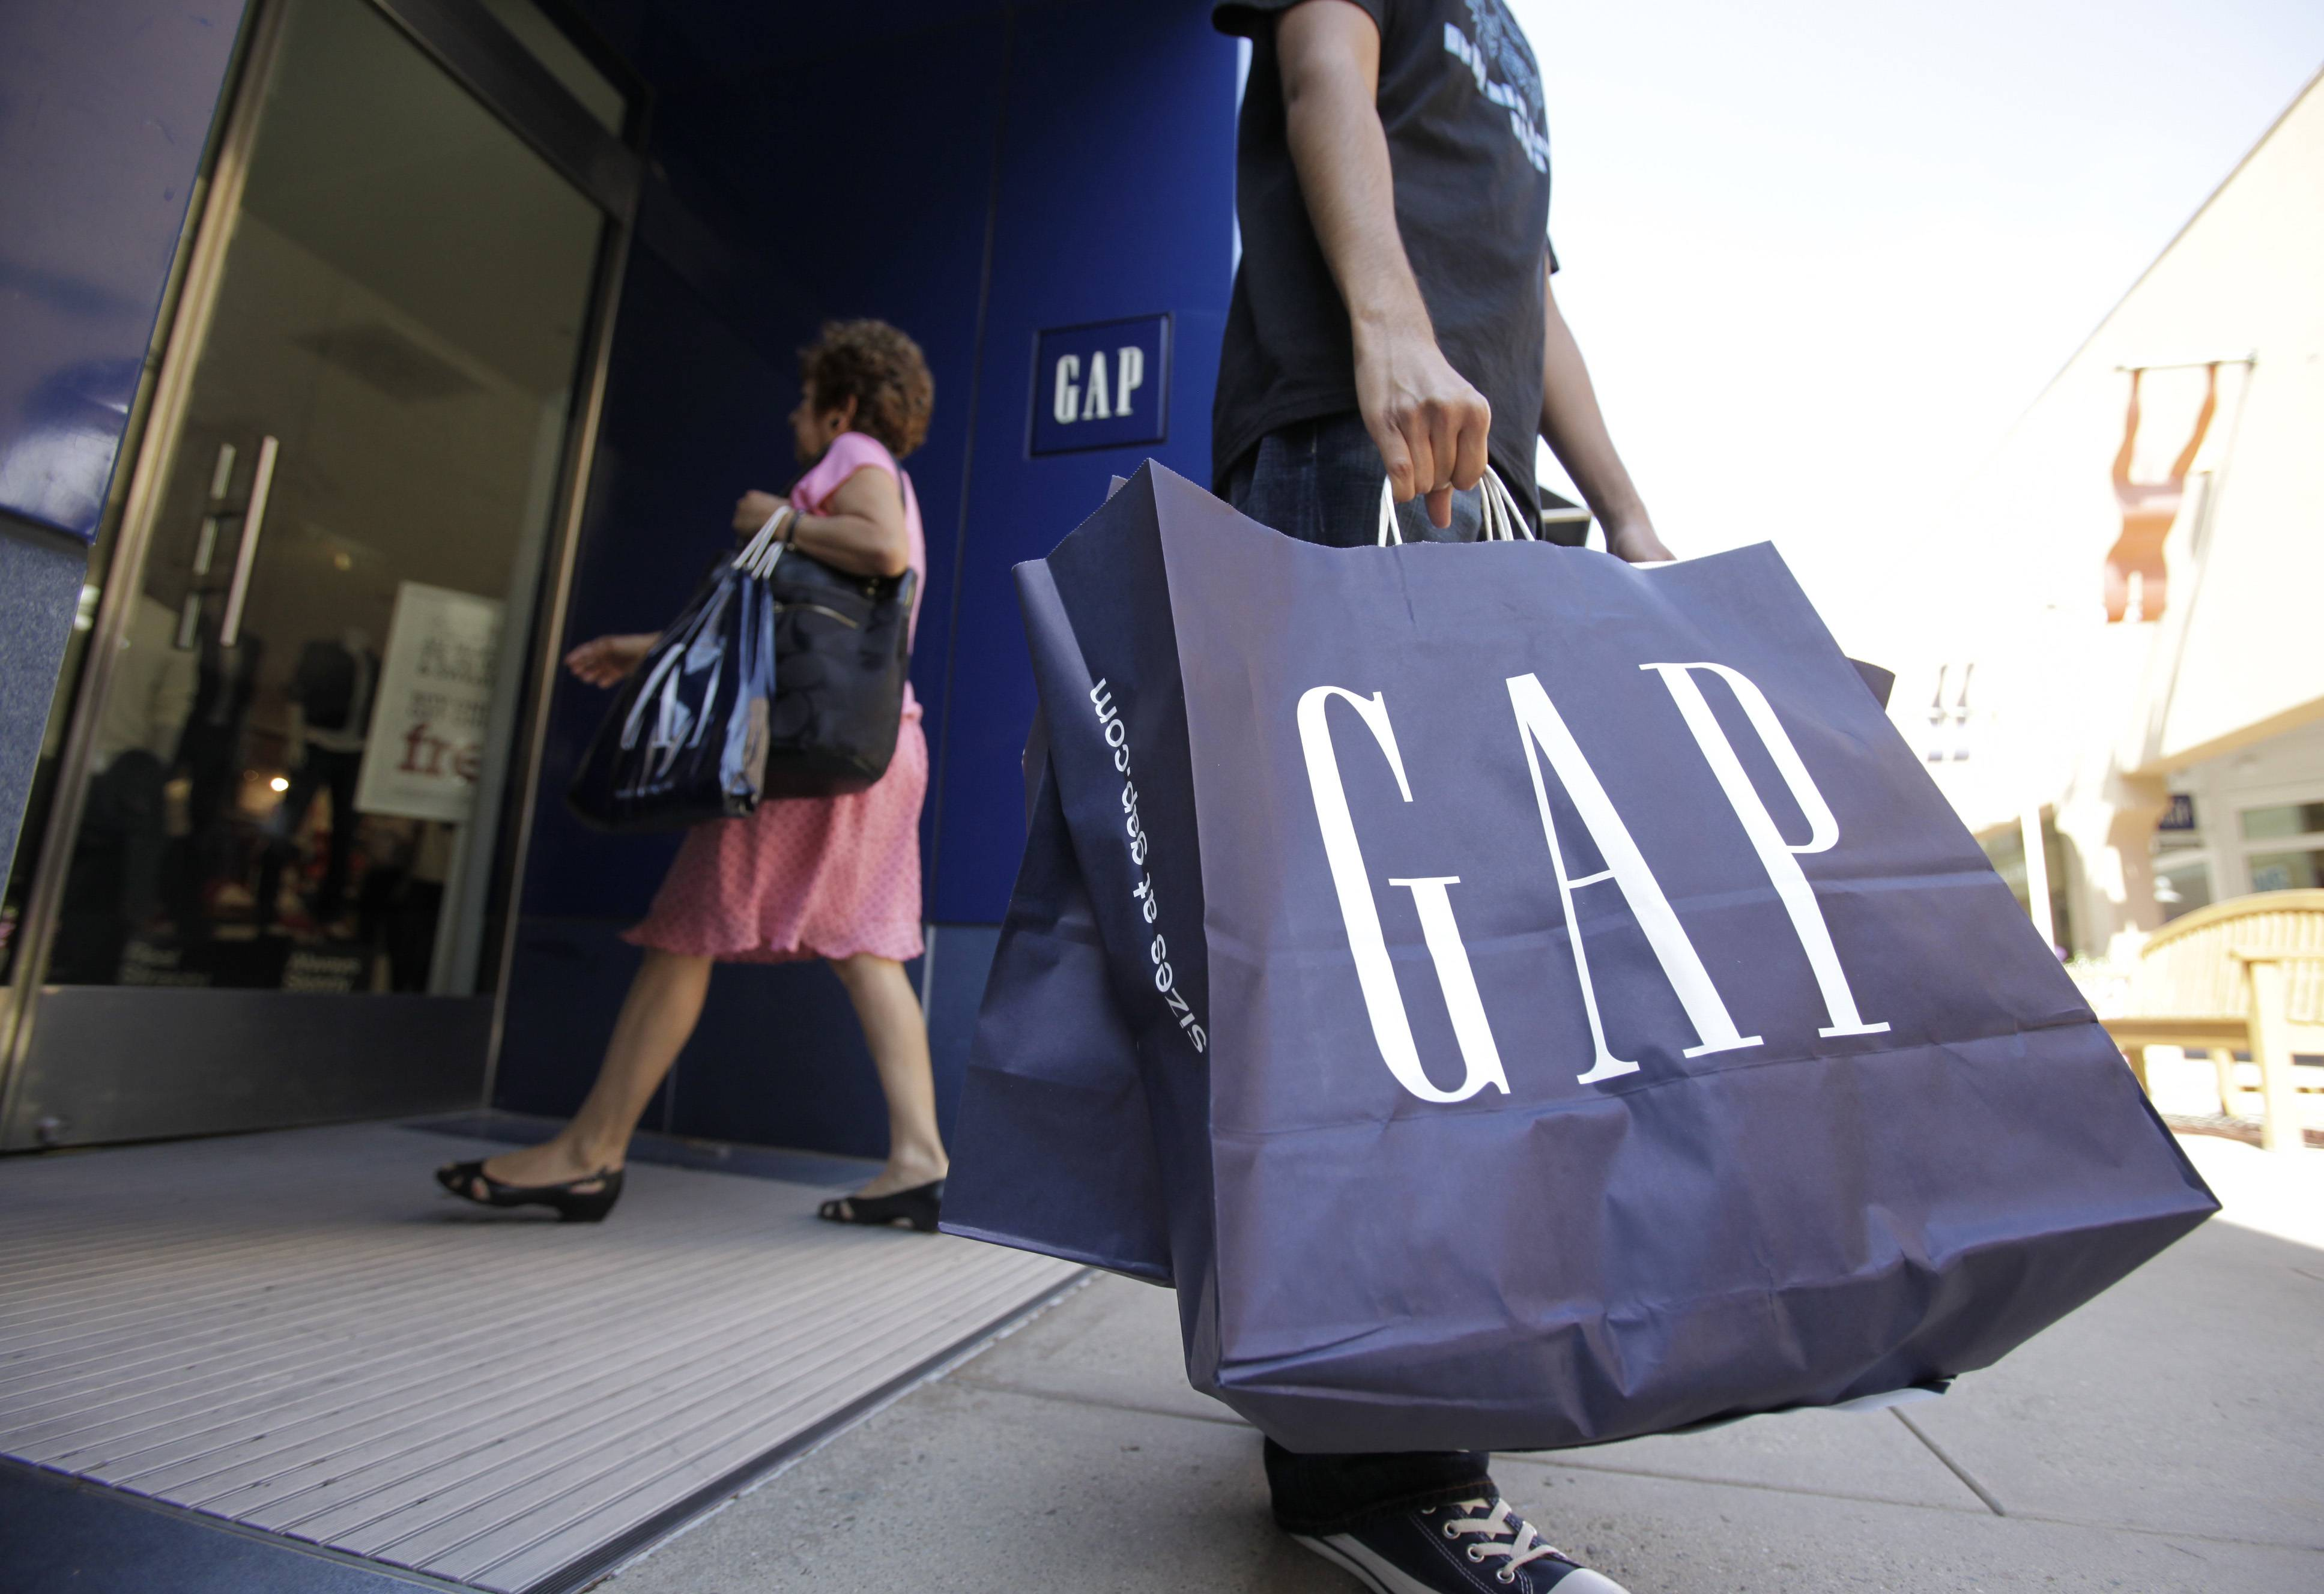 U.S. companies including Gap Inc. and Wal-Mart Stores Inc. are caught up in the debate over raising pay -- this time an increase in the federal minimum wage.